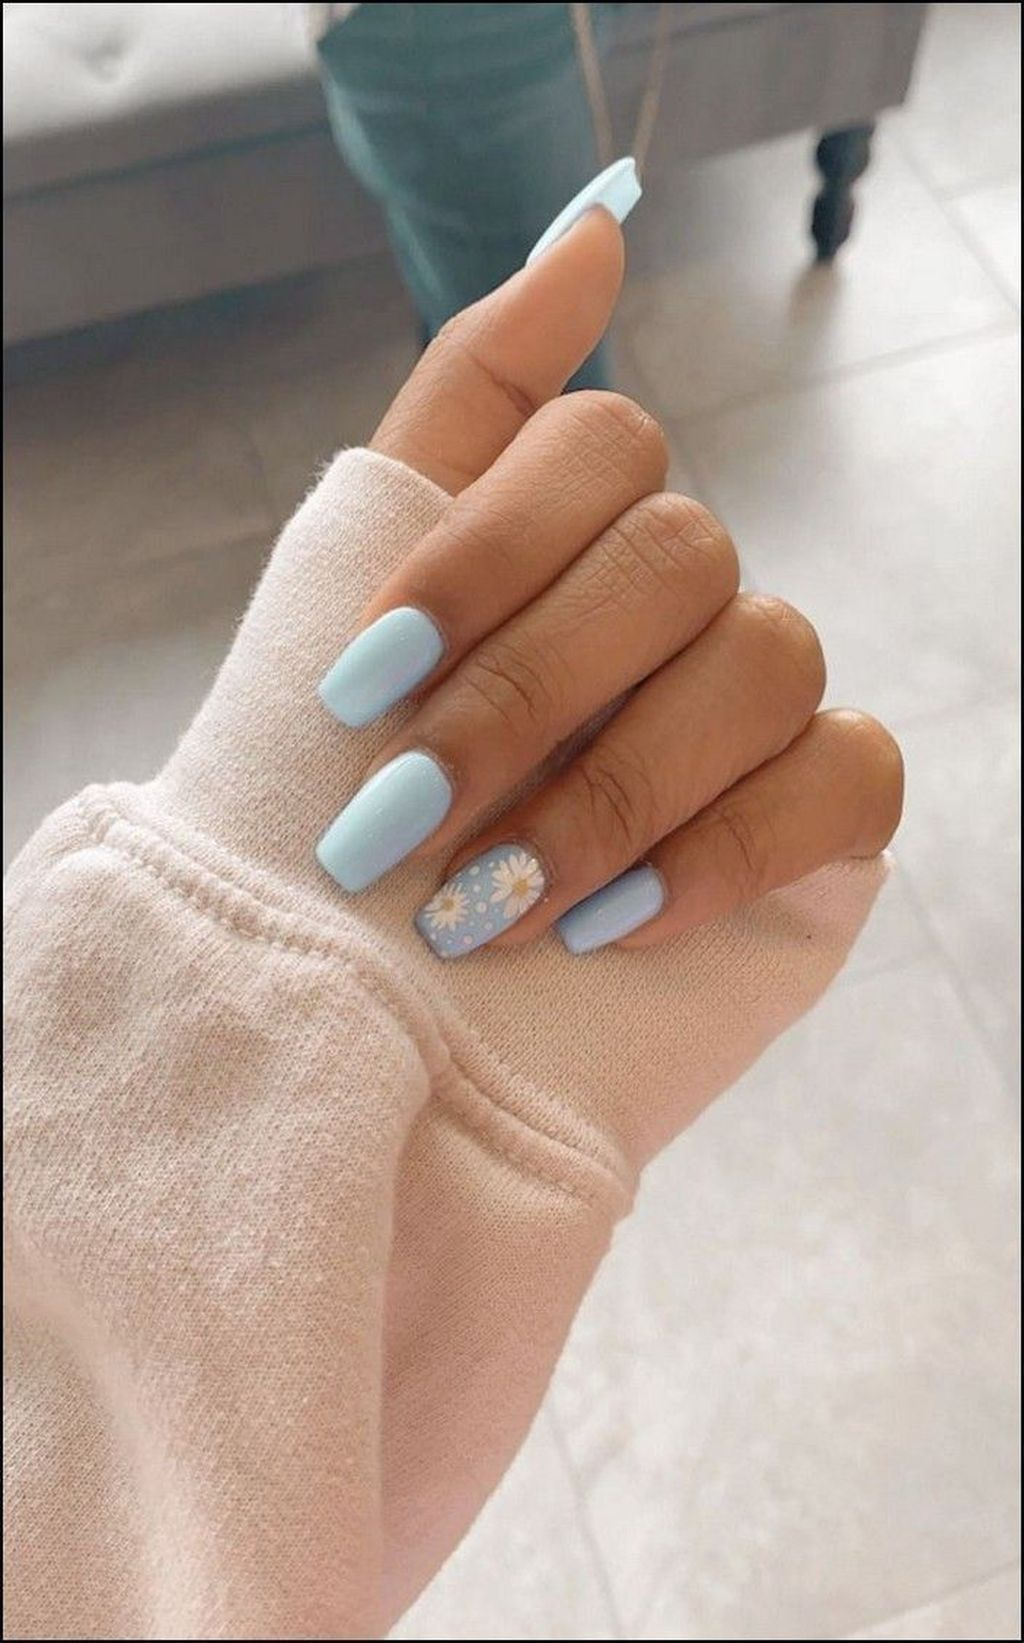 40 Perfect Acrylic Nail Designs Ideas For New Year 2020 In 2020 Summer Acrylic Nails Short Acrylic Nails Best Acrylic Nails